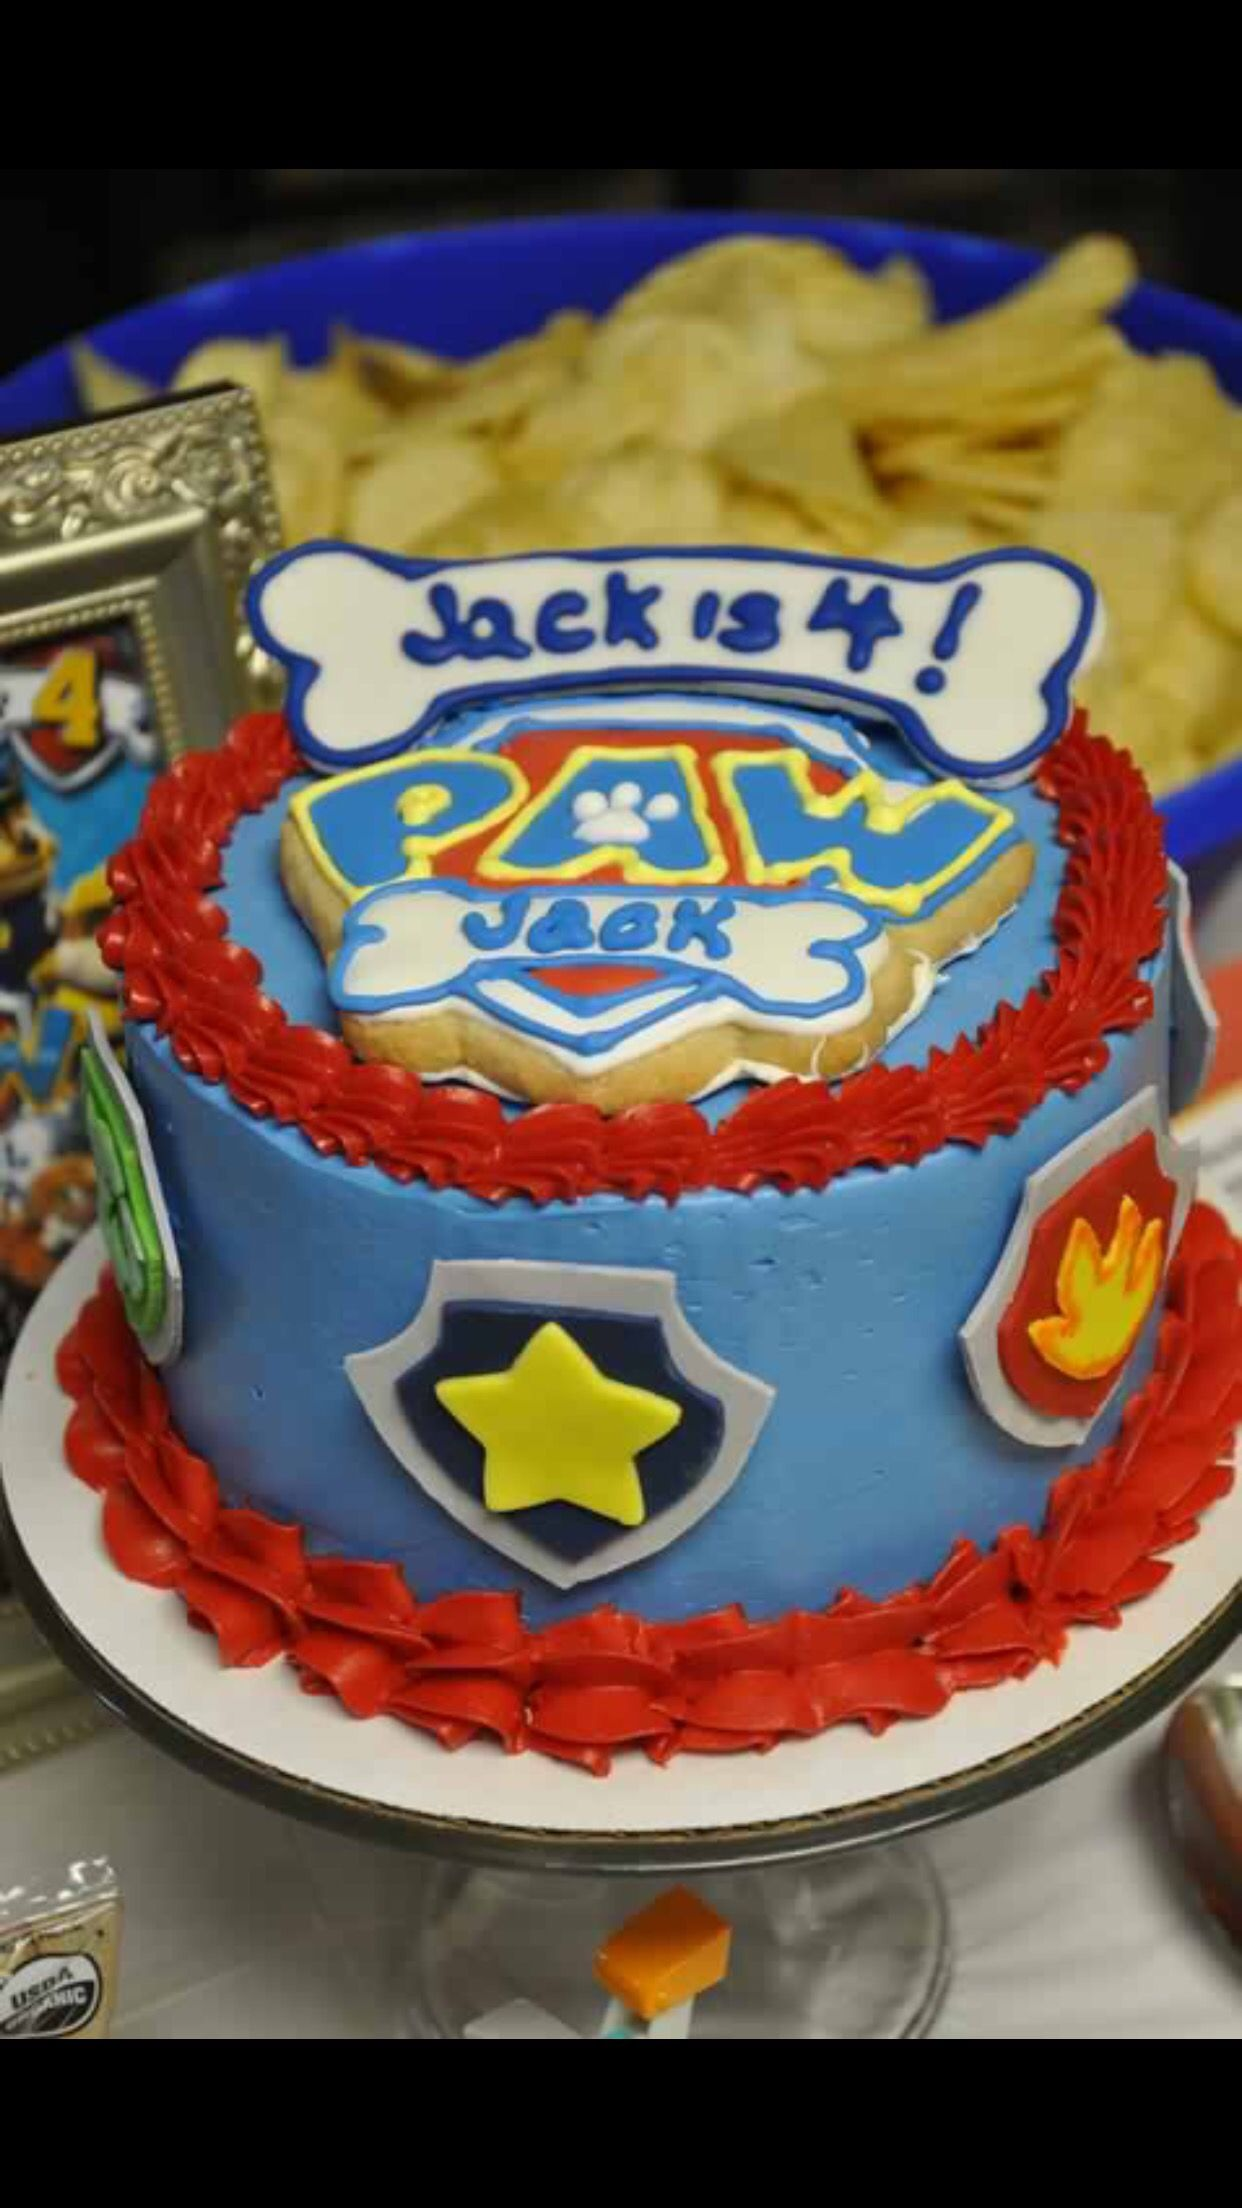 Astonishing Paw Patrol Smash Cake Greenville Sc Www Mysweetfavorites Com Funny Birthday Cards Online Chimdamsfinfo